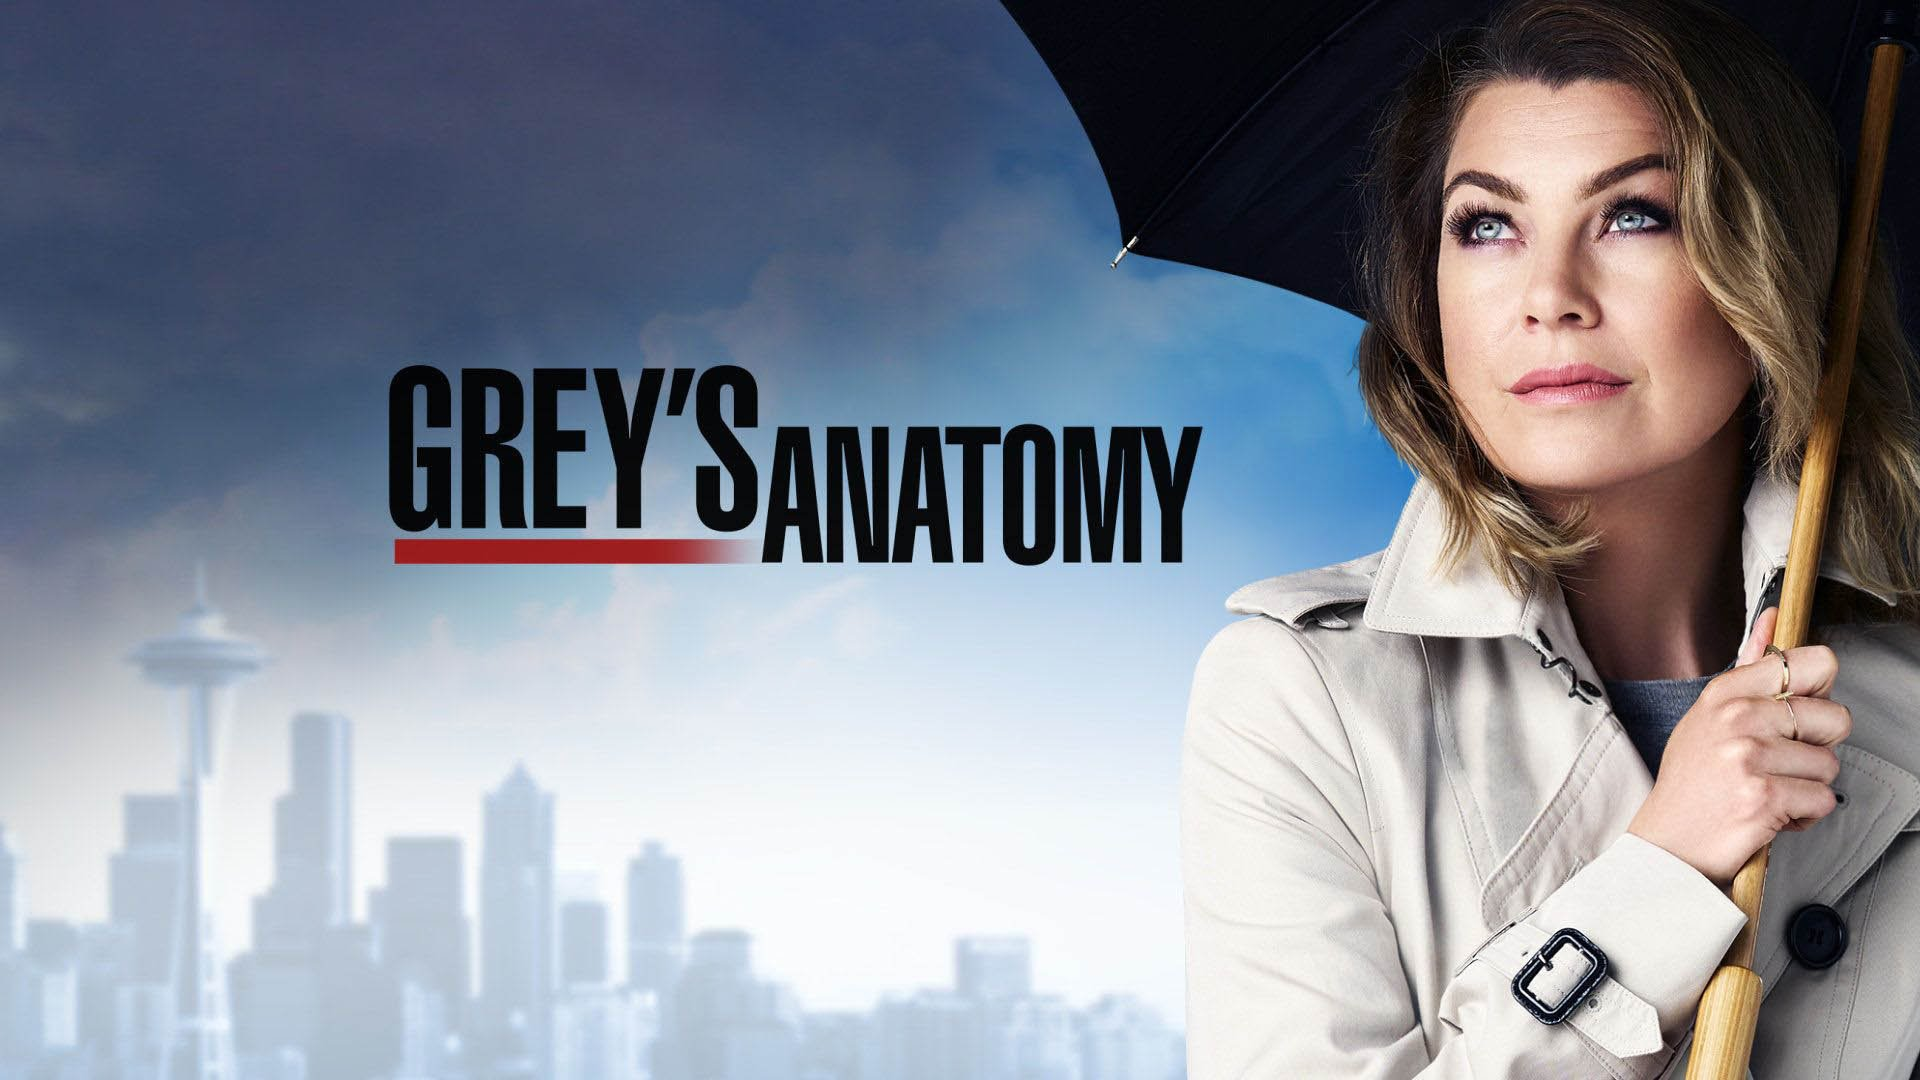 grey s anatomy season 12 poster wallpaper 6394   The Anime Man 1920x1080